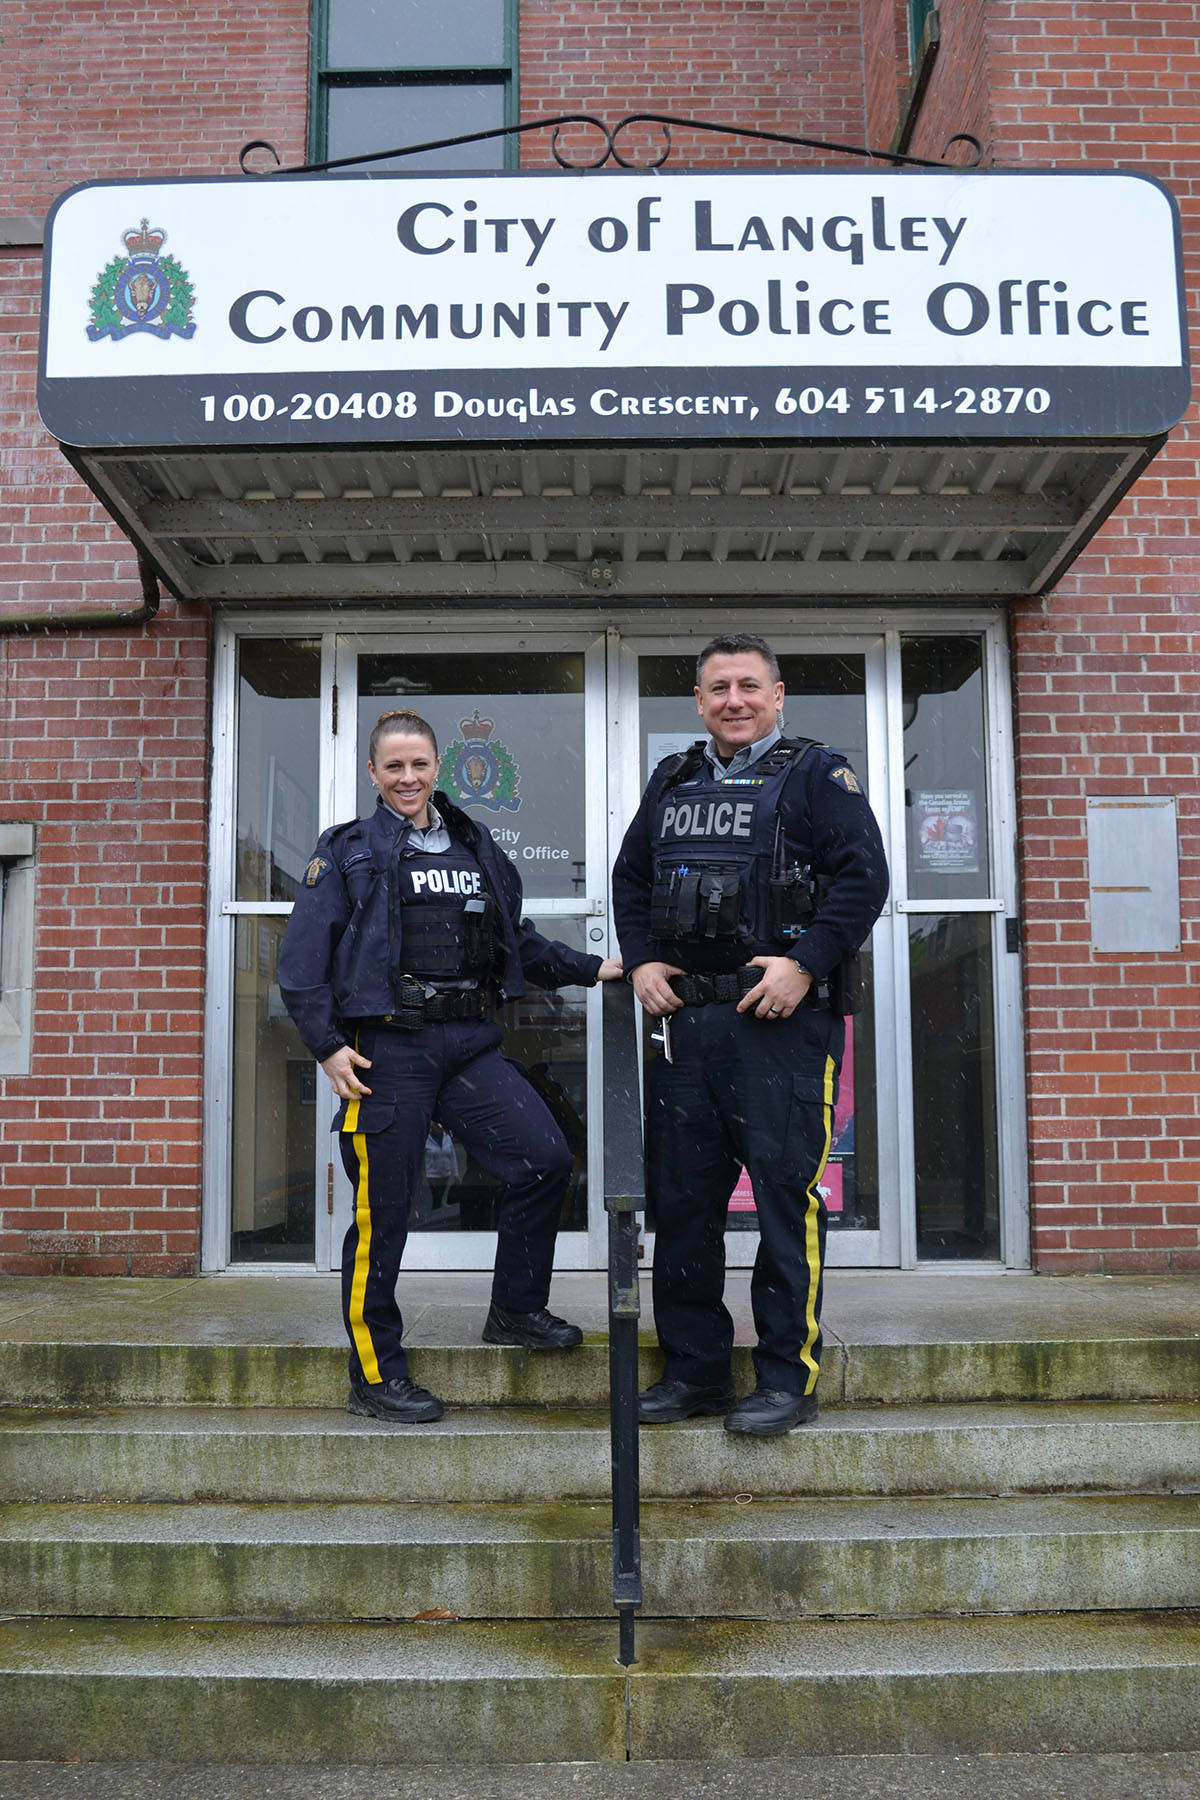 After two years of working in downtown Langley, RCMP Cpl. Steve McKeddie is handing over his duties as Langley City Community Liaison Officer to Const. Lisa Cormier who will be based out of the City CPO. Monique Tamminga Langley Times